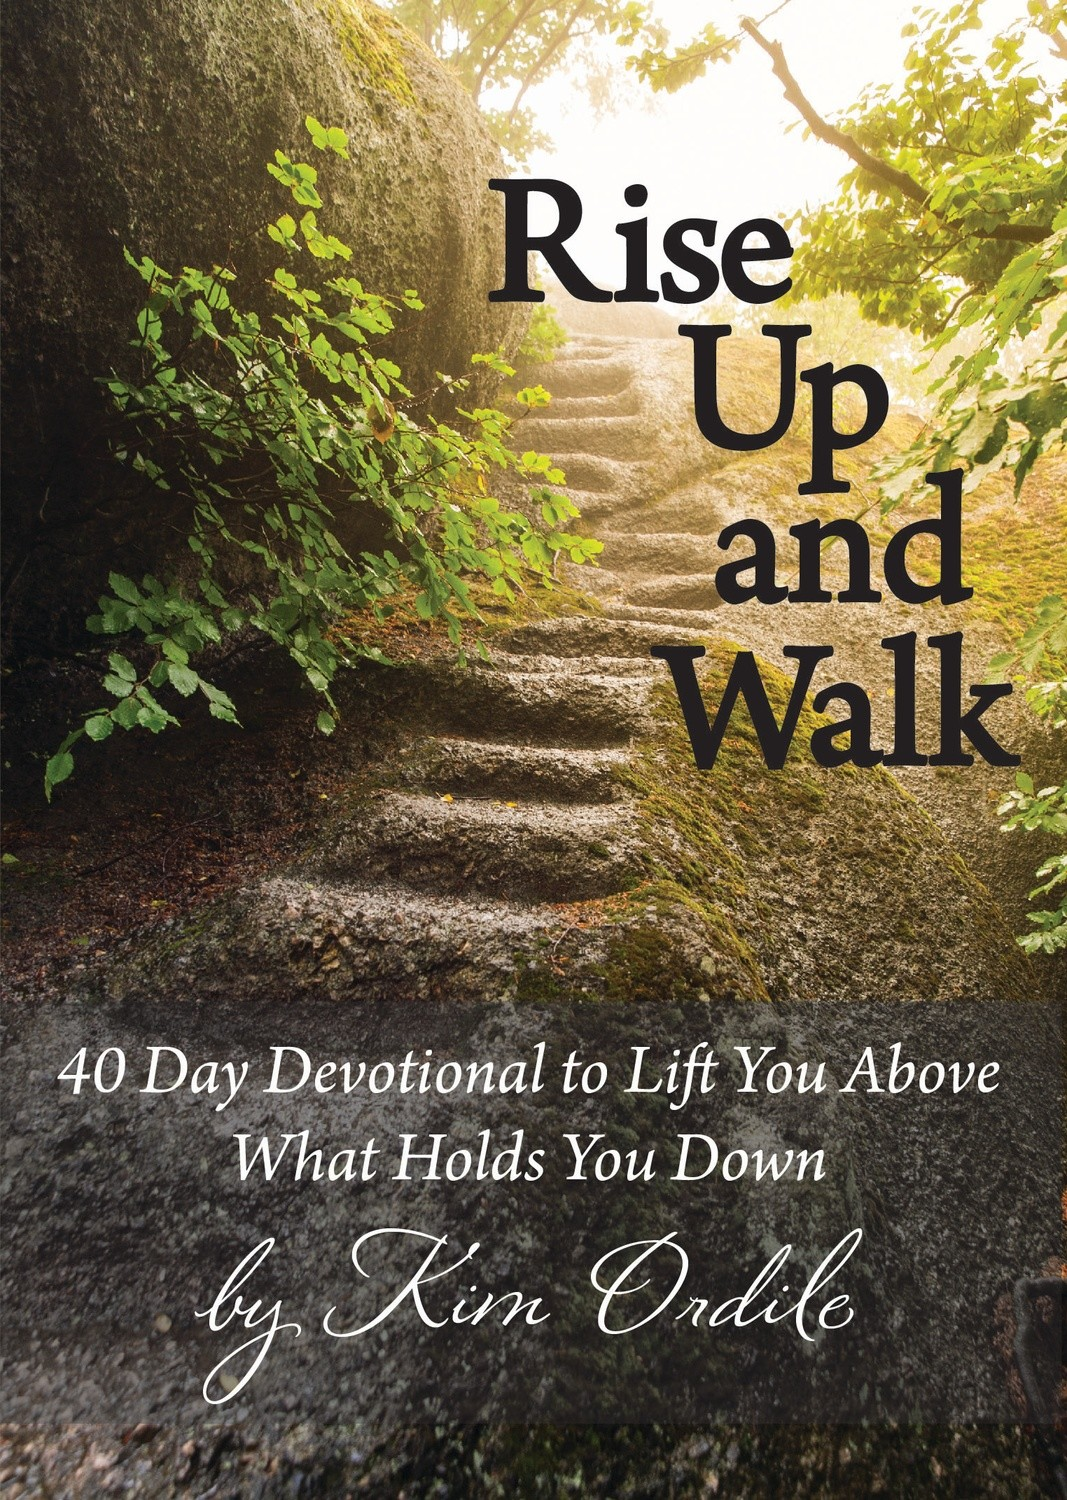 Rise Up and Walk 40 Day Devotional to Lift You Above What Holds You Down